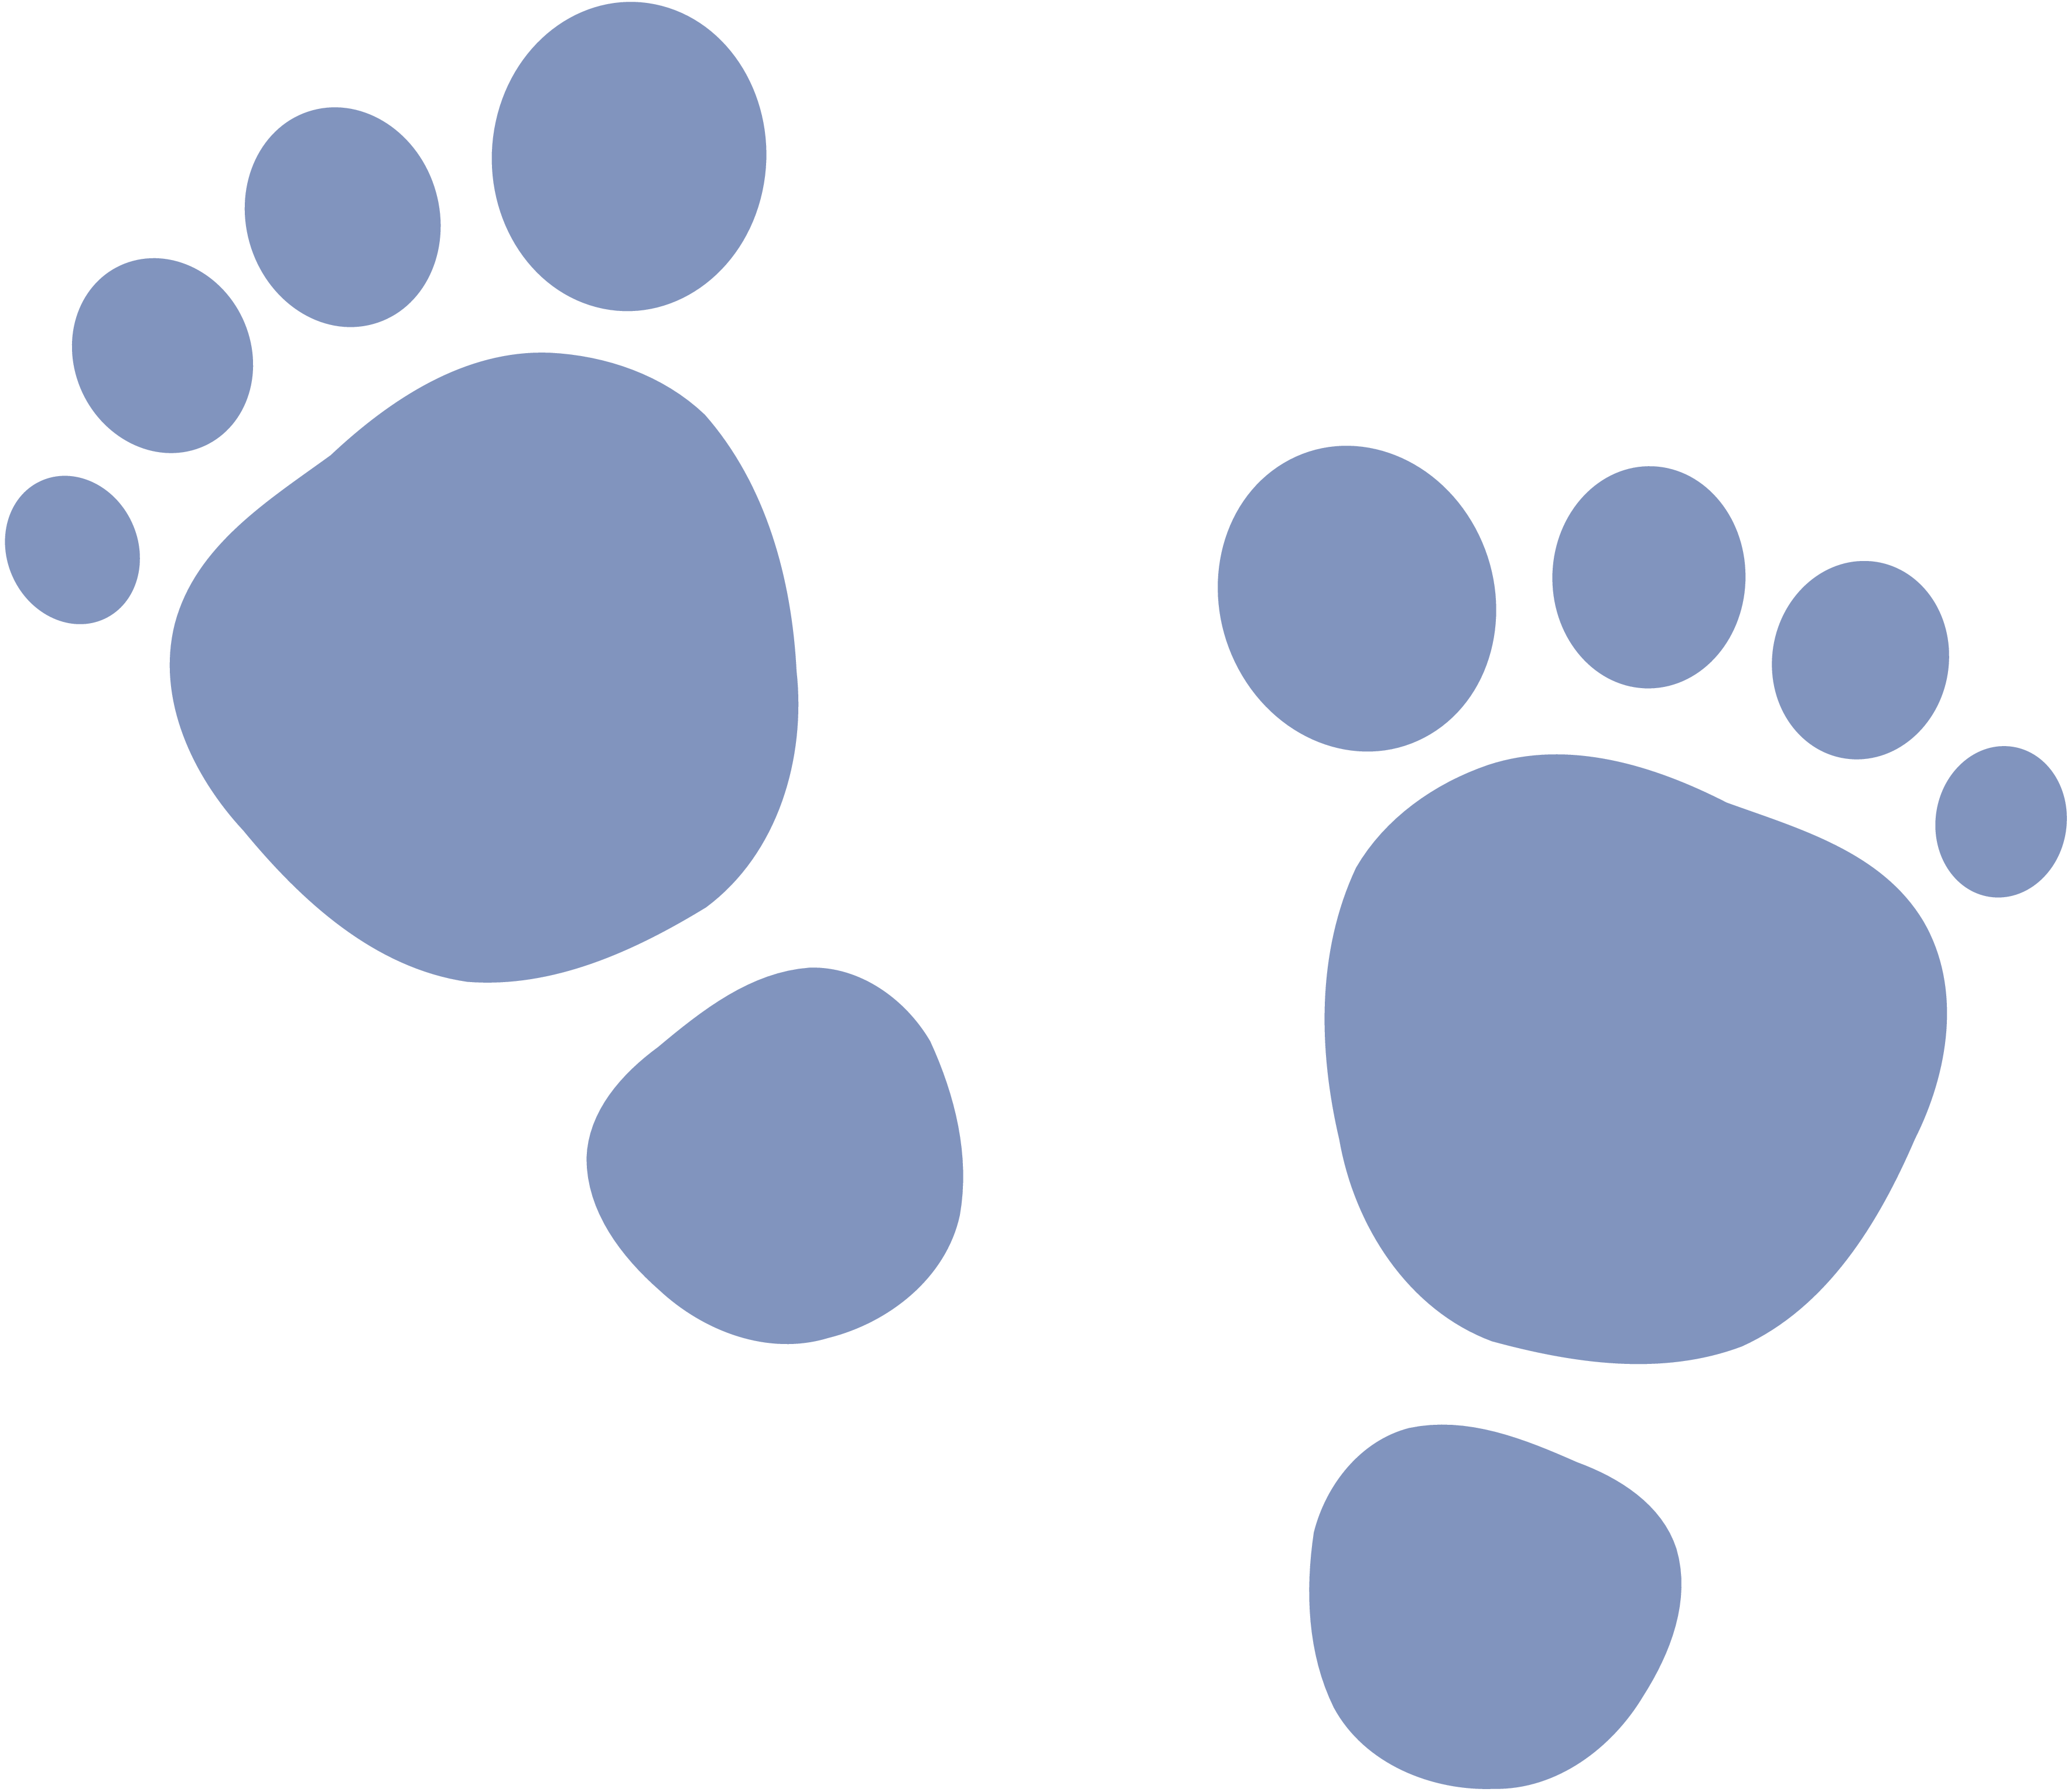 Footsteps clipart. Free cliparts download clip